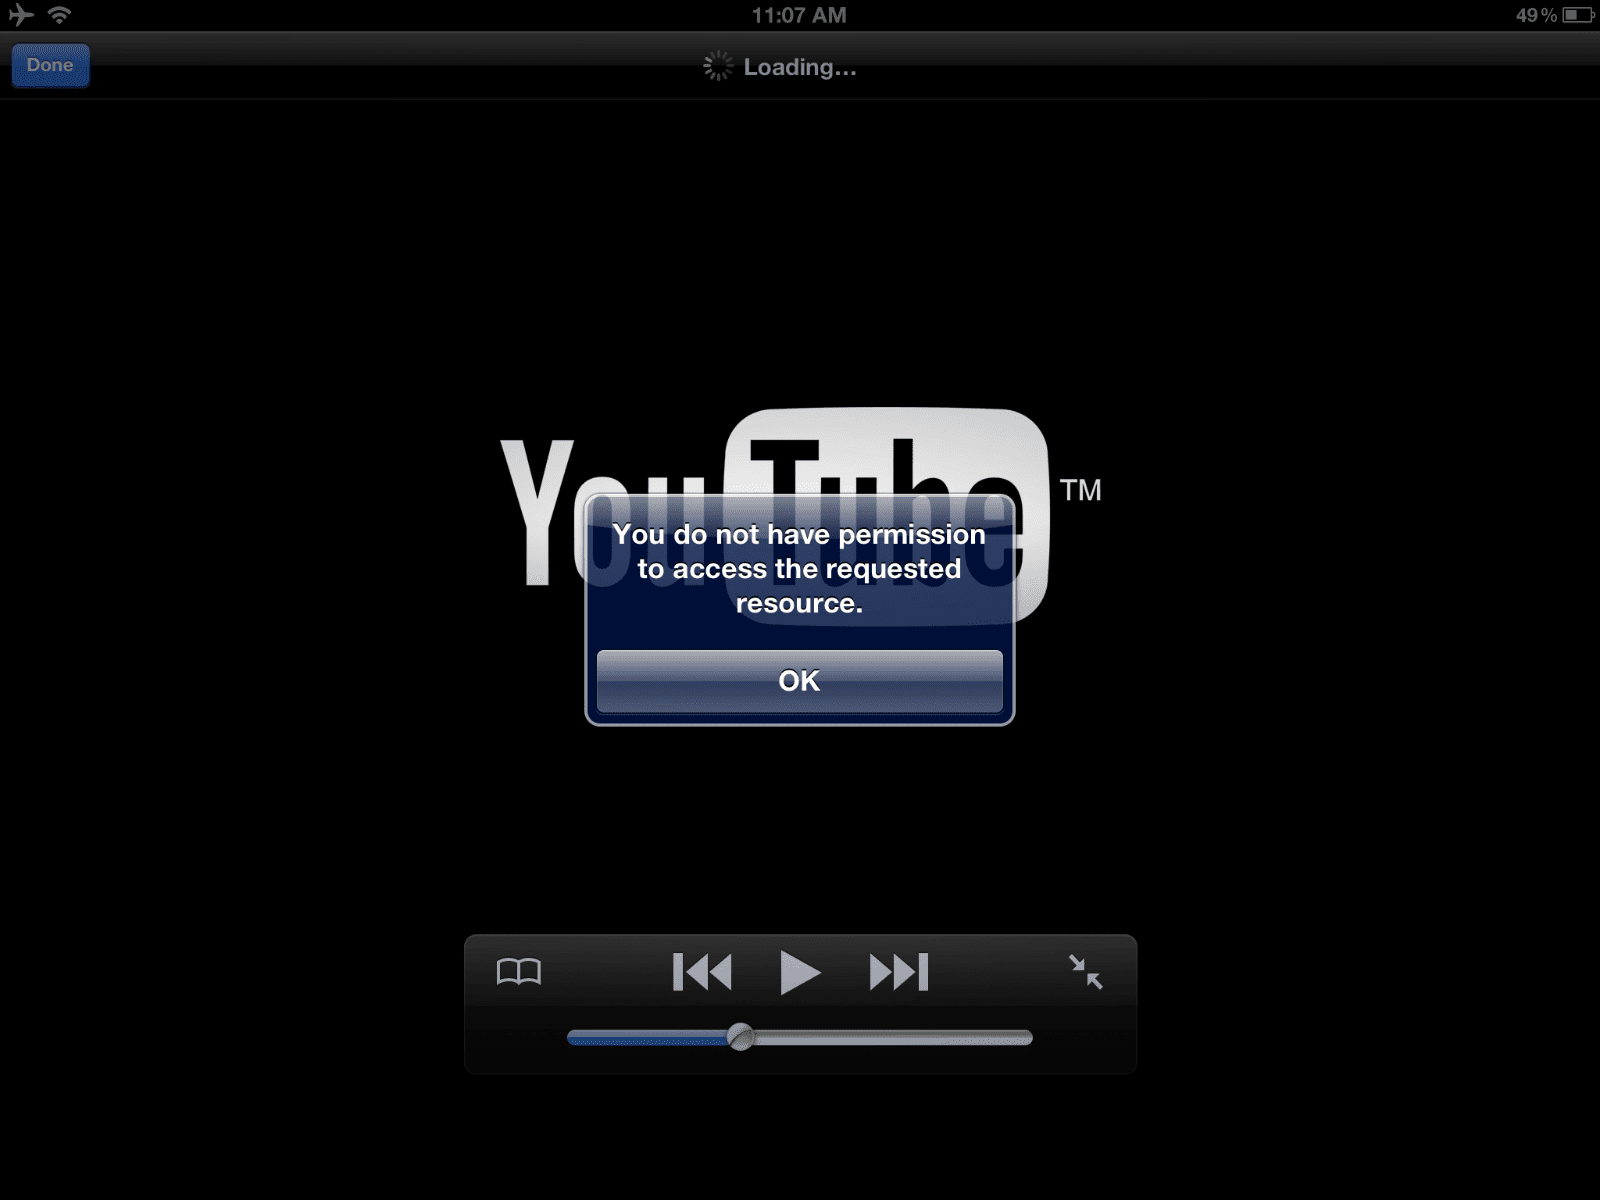 iPad, iPhone, iPod YouTube app: You do not have permission